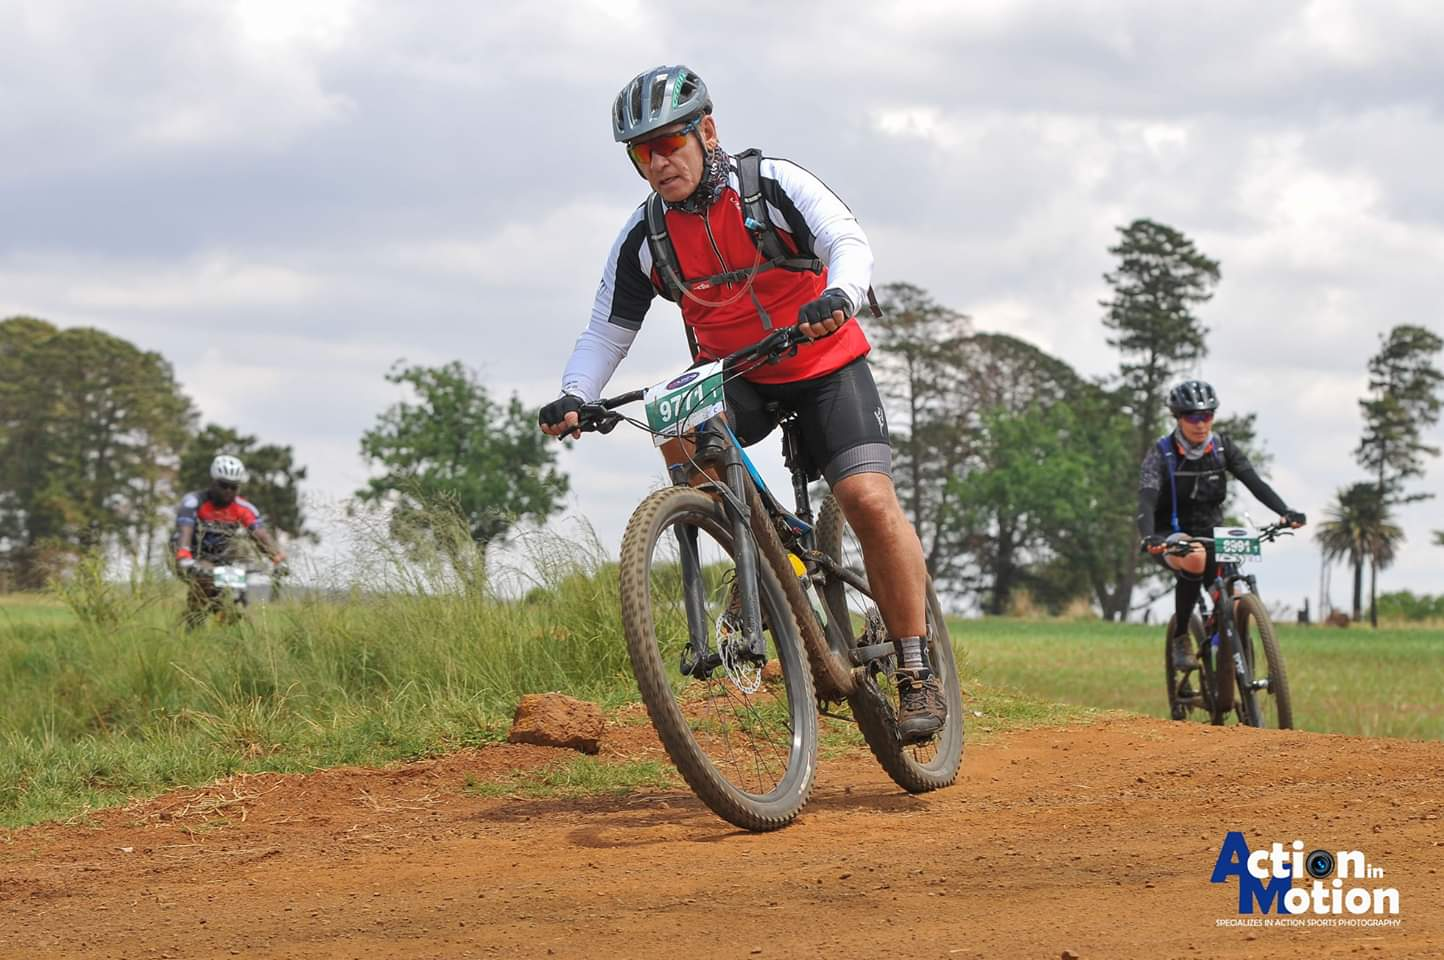 Alzu Tour de Farm MTB race